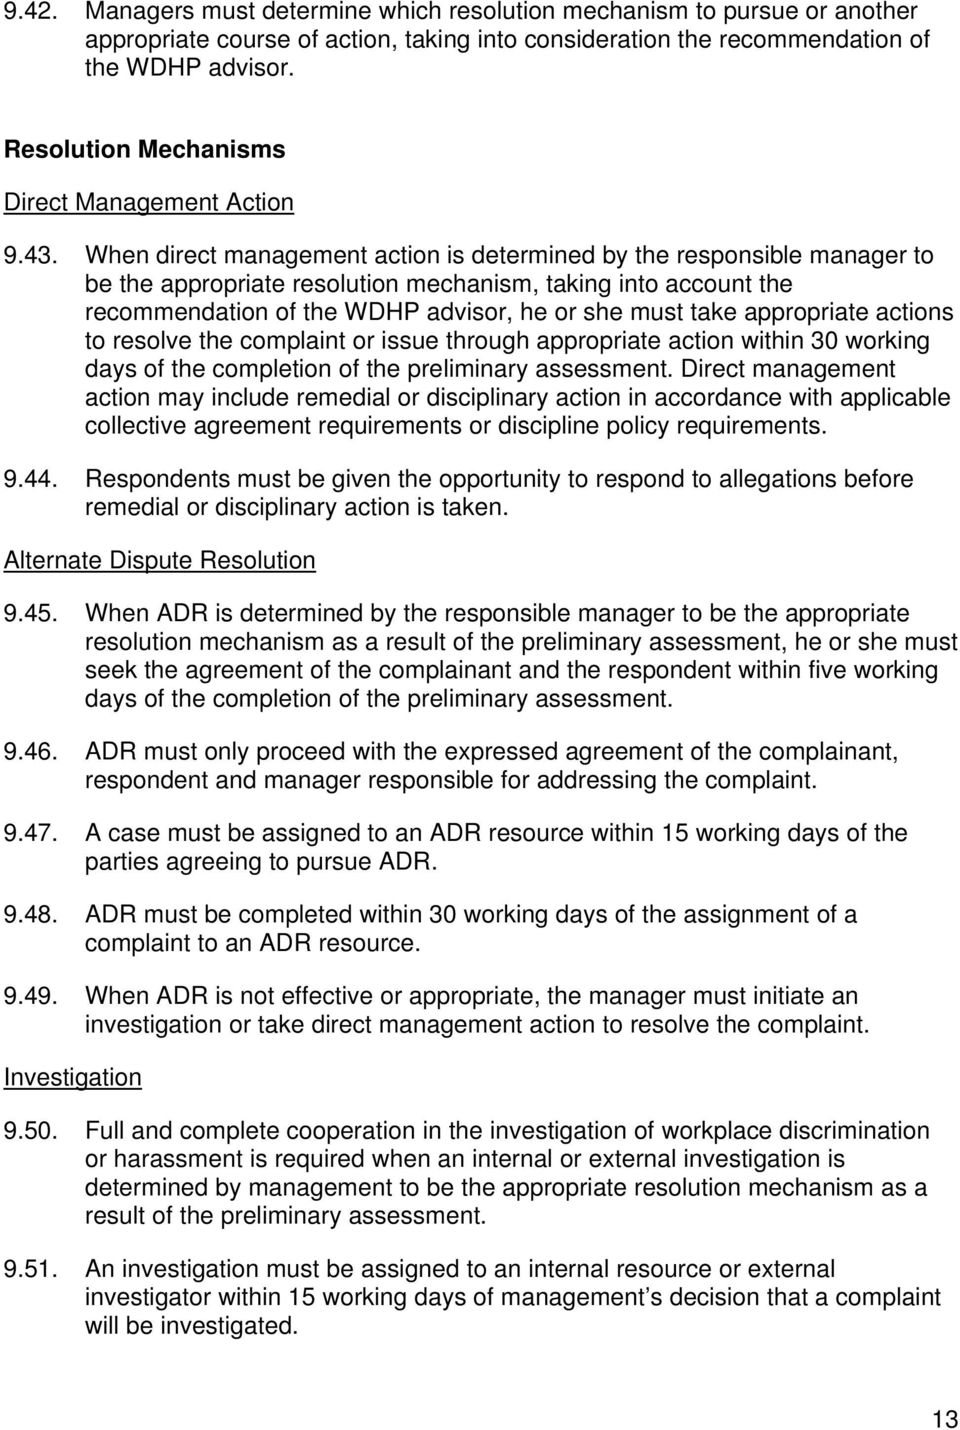 When direct management action is determined by the responsible manager to be the appropriate resolution mechanism, taking into account the recommendation of the WDHP advisor, he or she must take